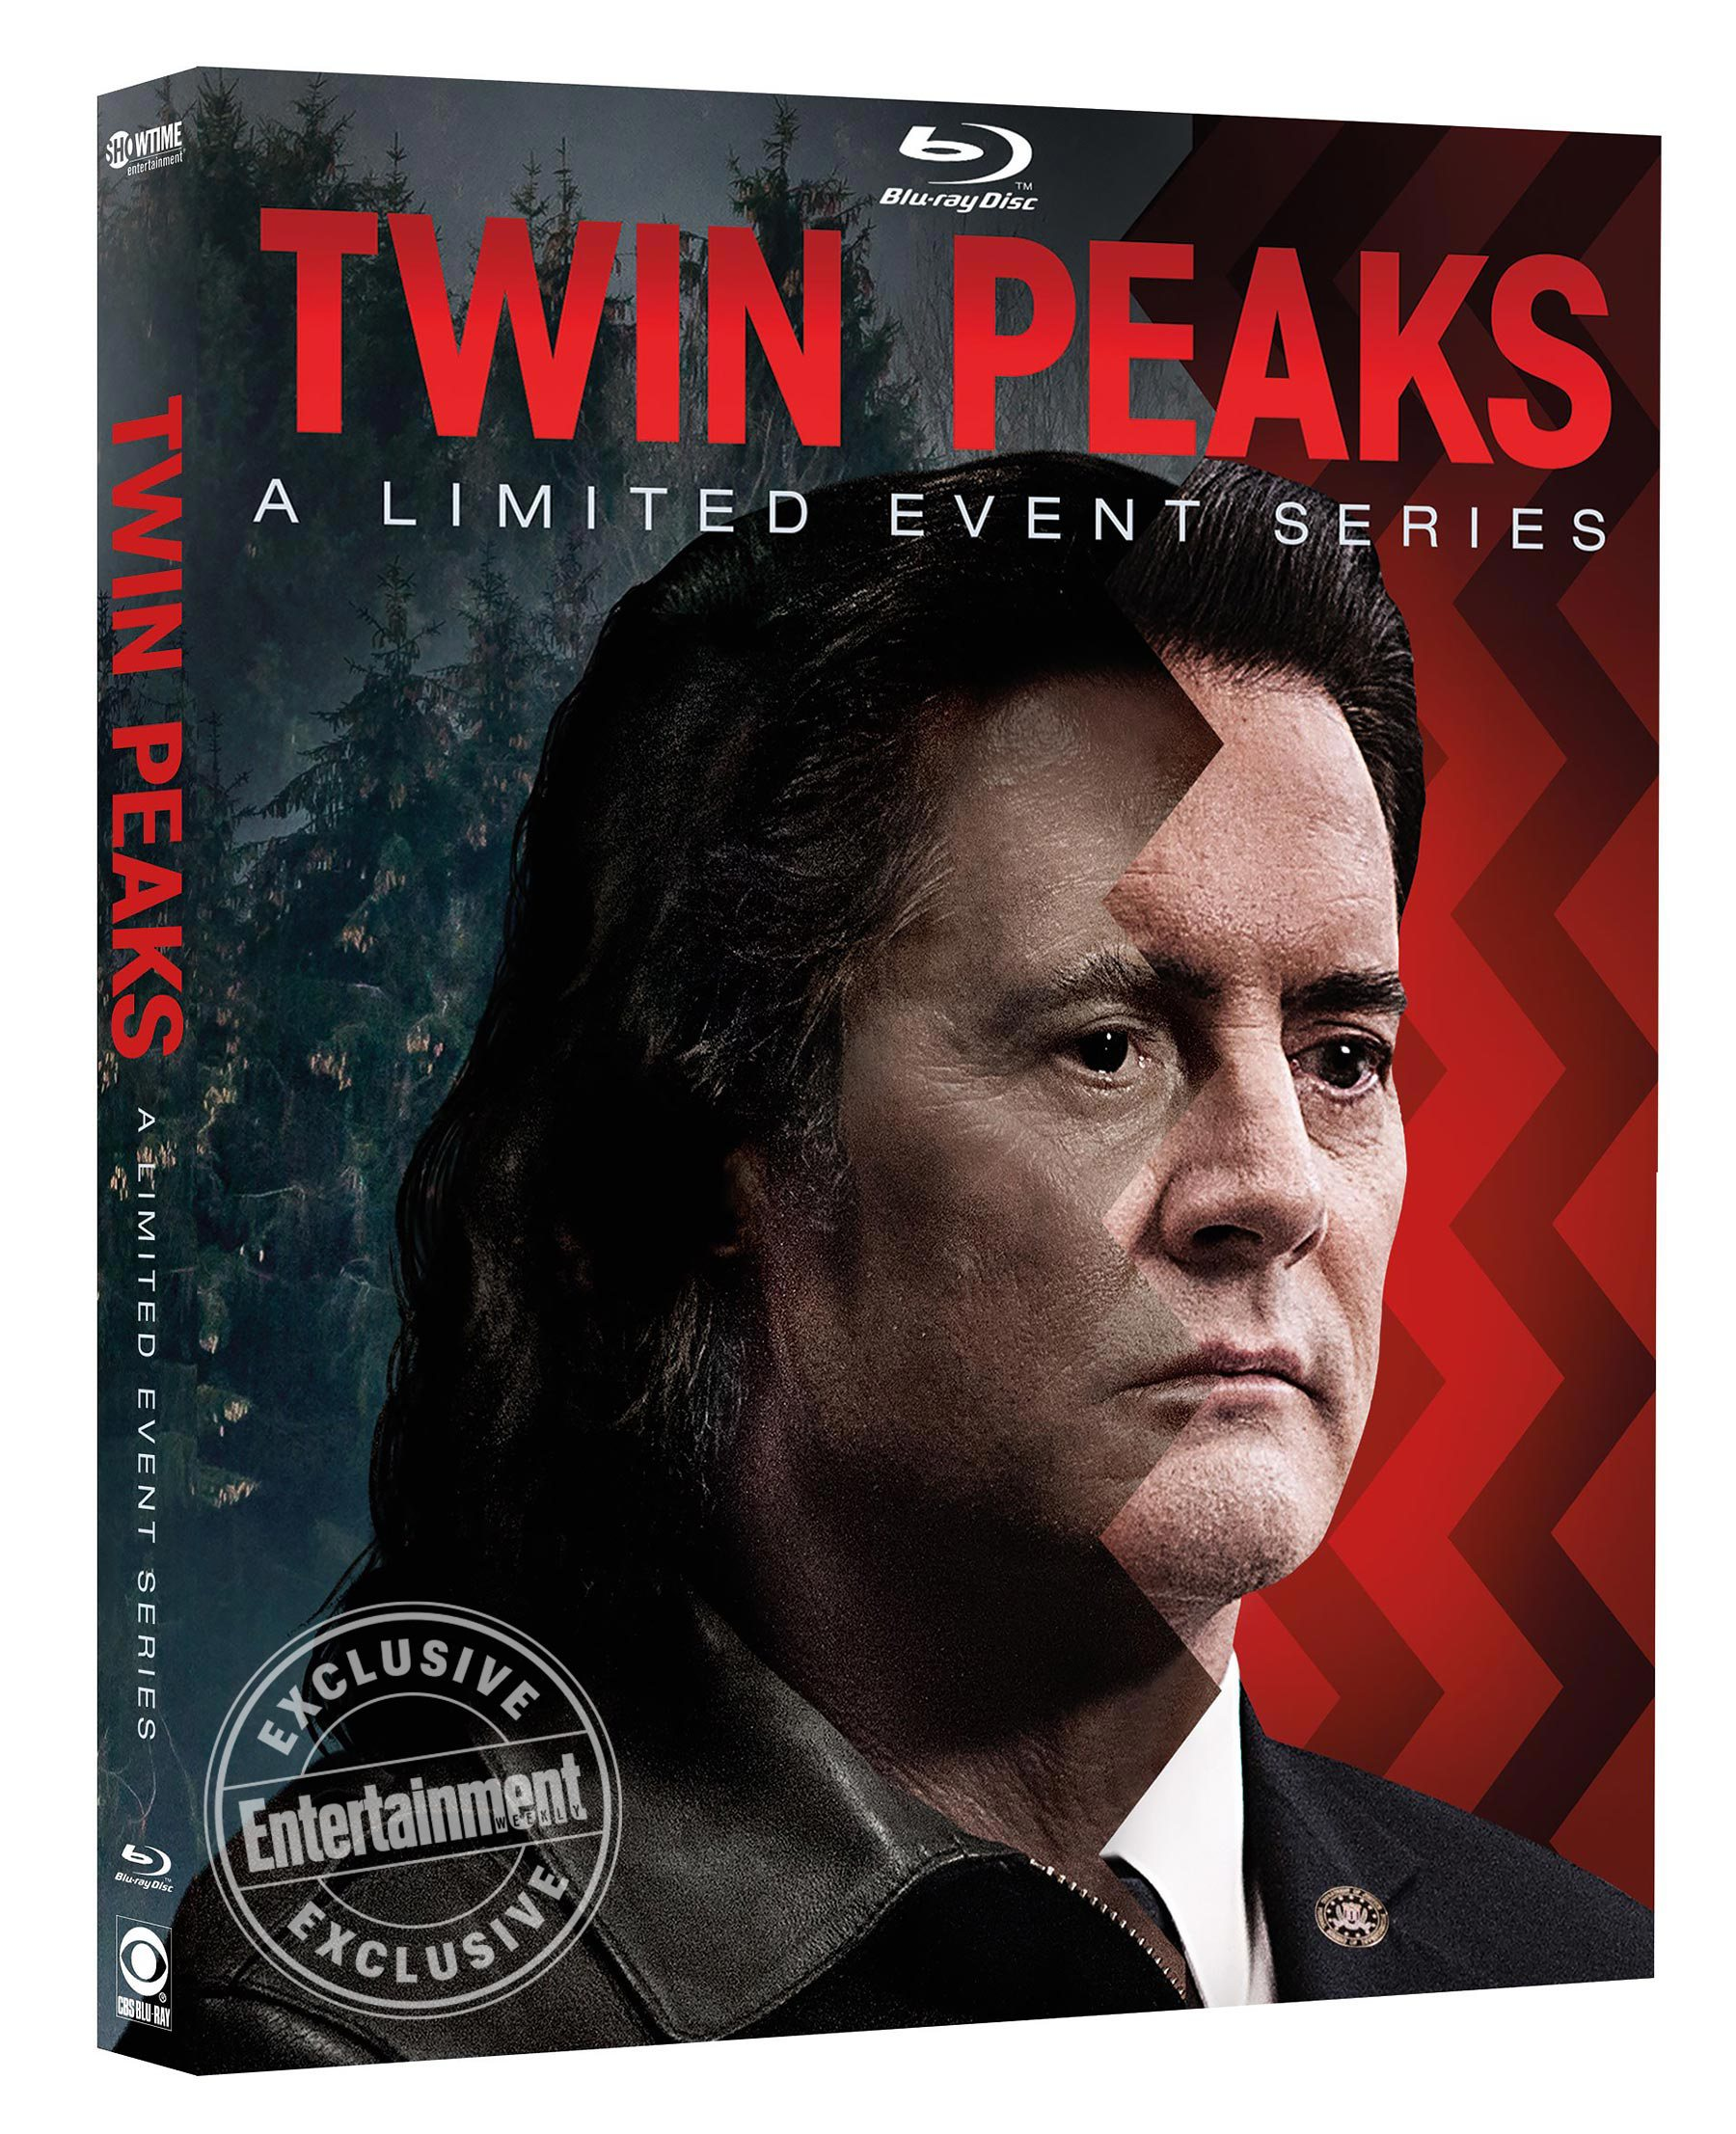 twin peaks dvd cover Twin Peaks: A Limited Event Series DVD/Blu ray includes six hours of bonus material